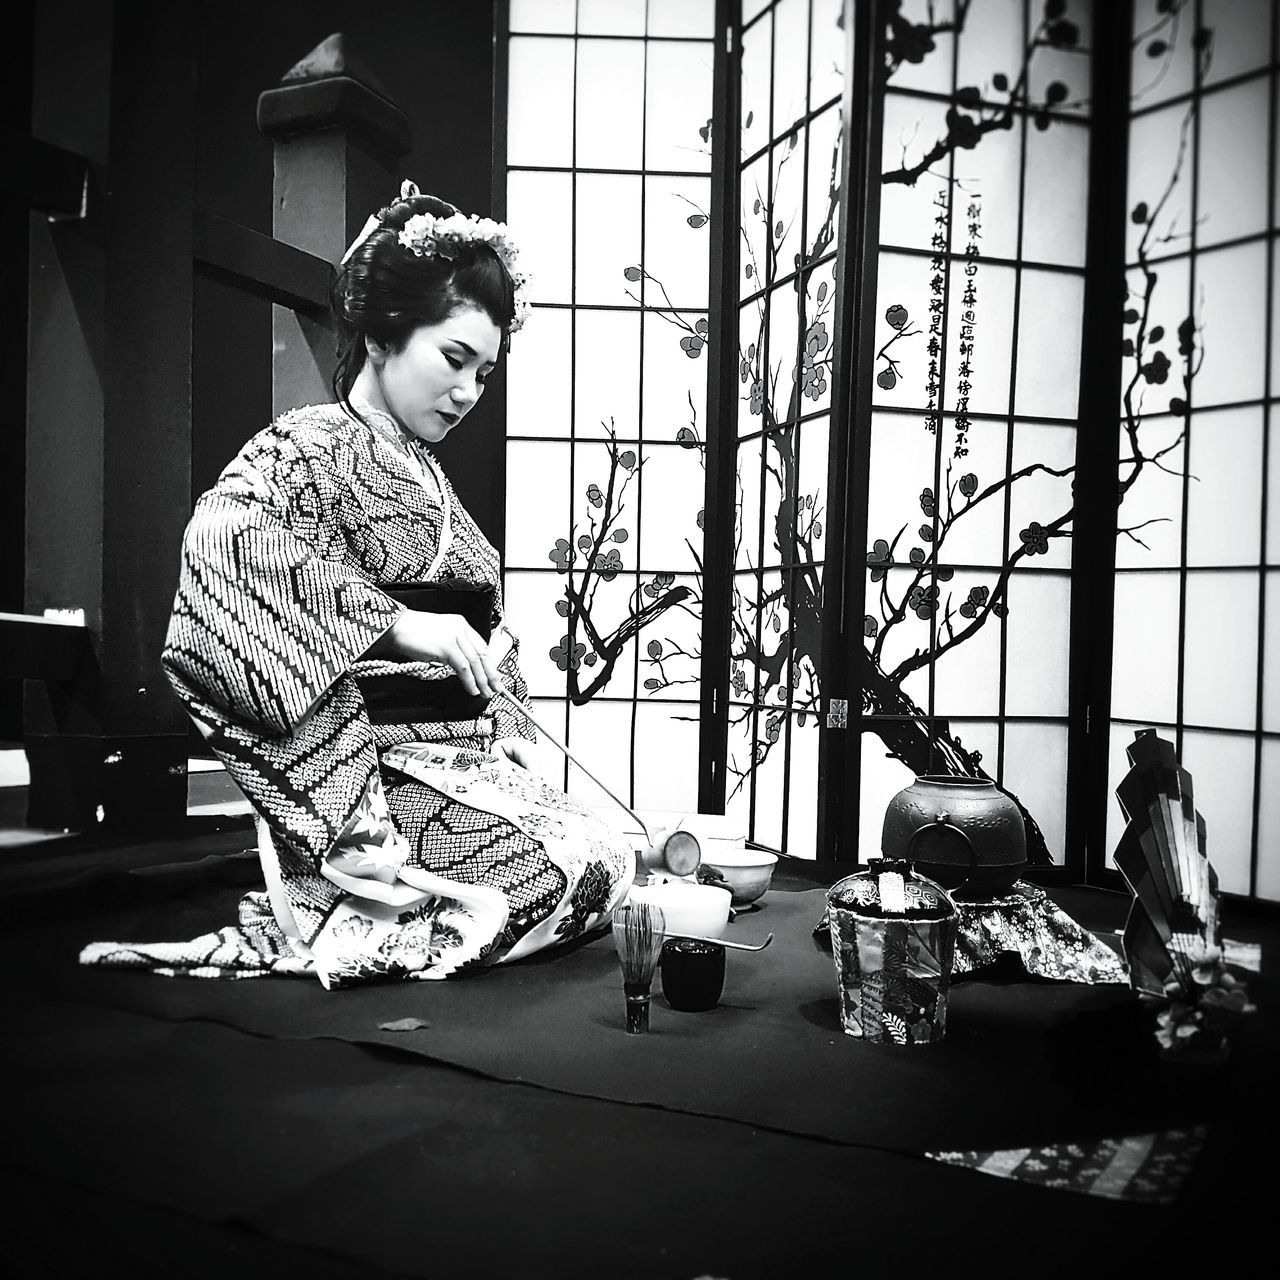 Week On Eyeem EyeEm New Here Blackandwhite Photography Old-fashioned Lifestyles Traditional Culture Women Who Inspire You Black & White Blackandwhite Ceremony Of Tea Portrait Japanese Culture Black And White Portrait Japan Japanese  Woman Portrait BW Collection Japanese Traditional Japan Photography Traditional Clothing Woman Power Geisha Tradition Women Around The World